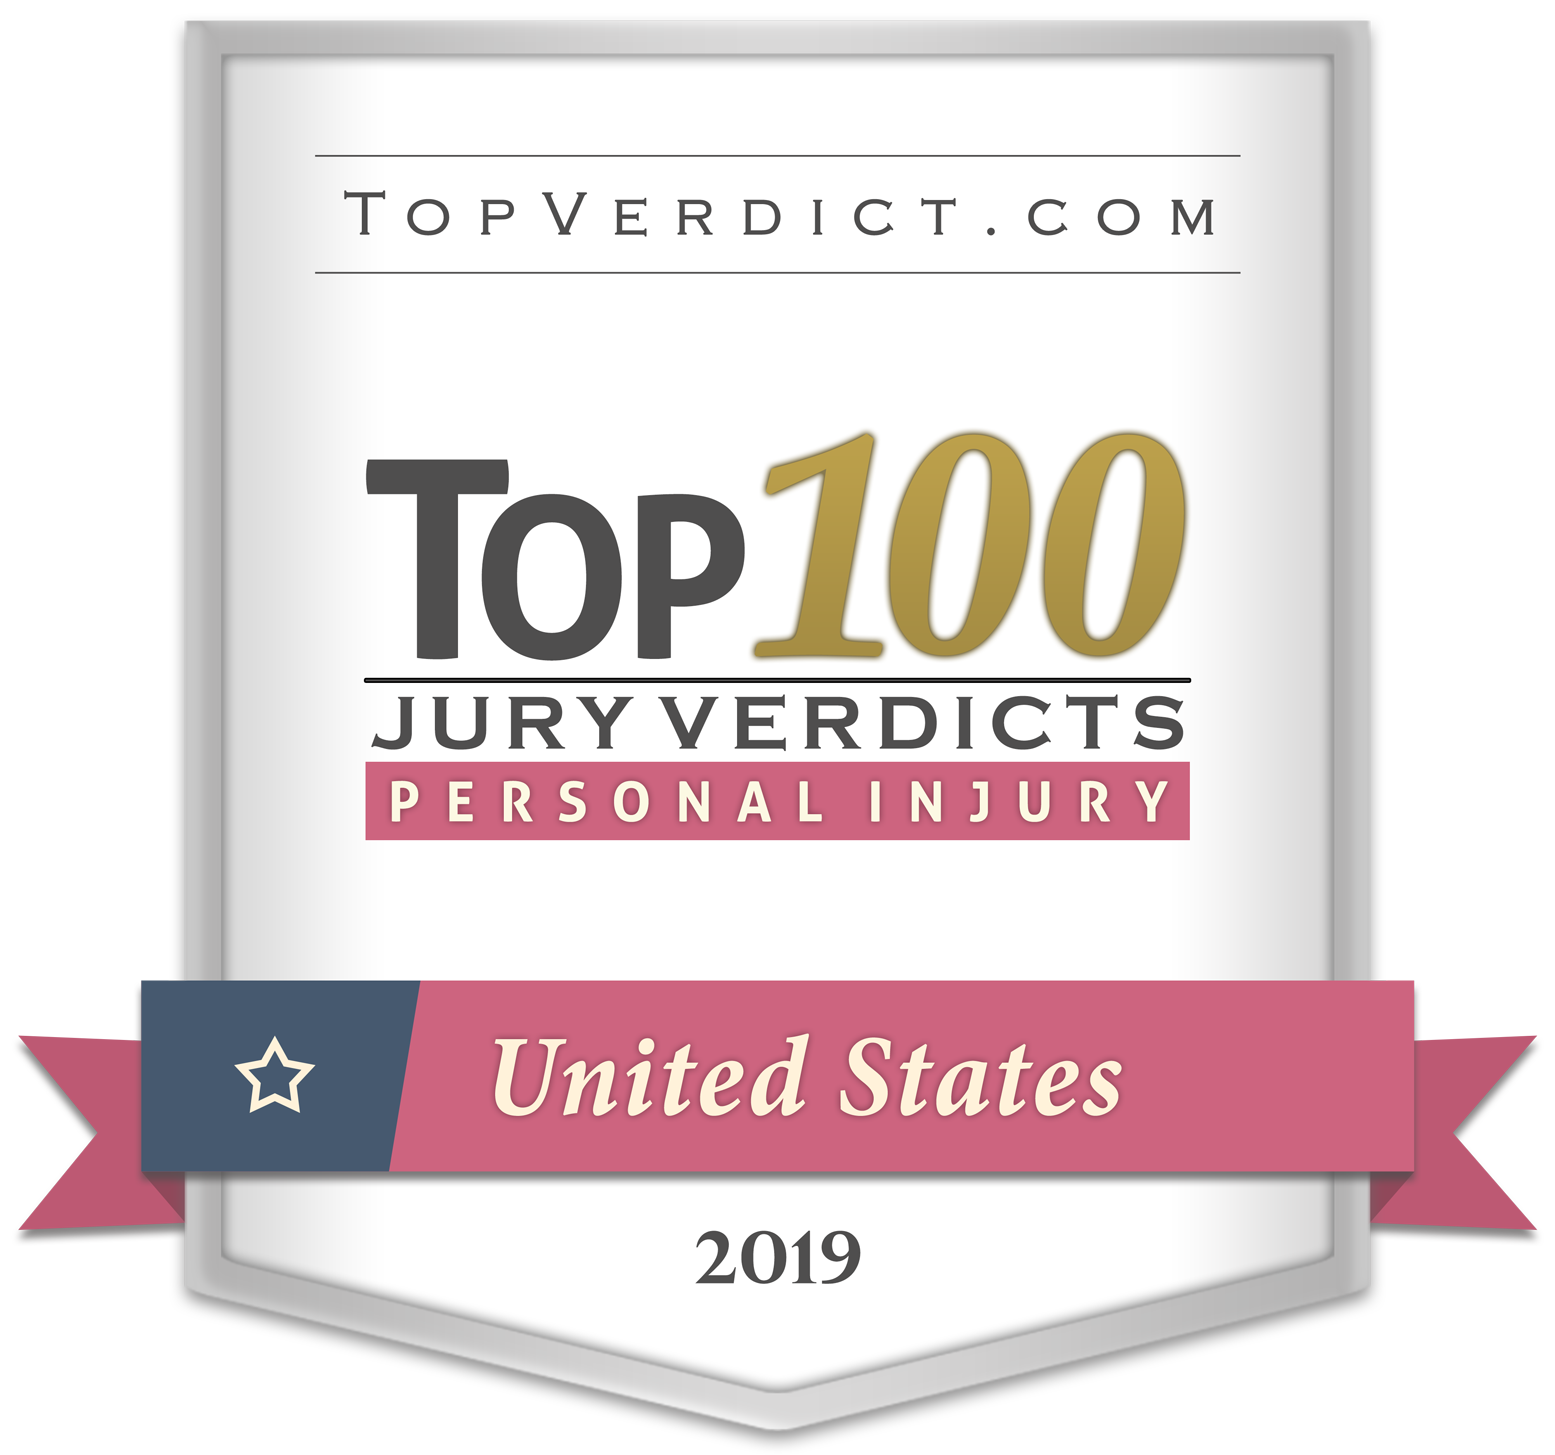 Top 100 Personal Injury Verdicts in the United States in 2019